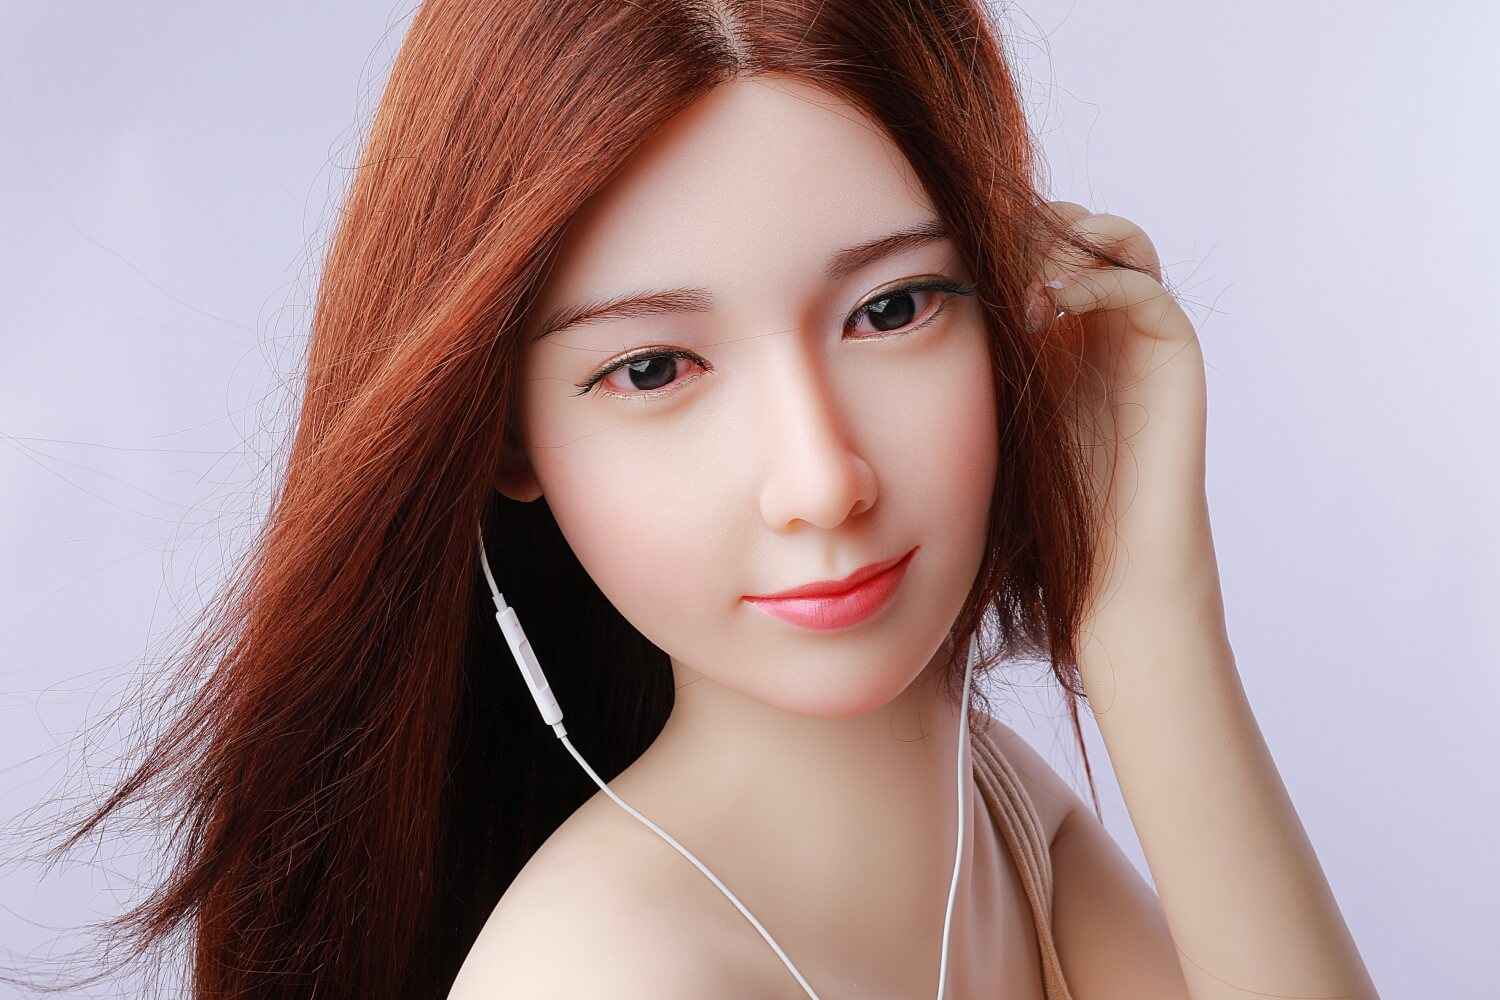 Yun Sex Doll - Small Breast and Pink Face